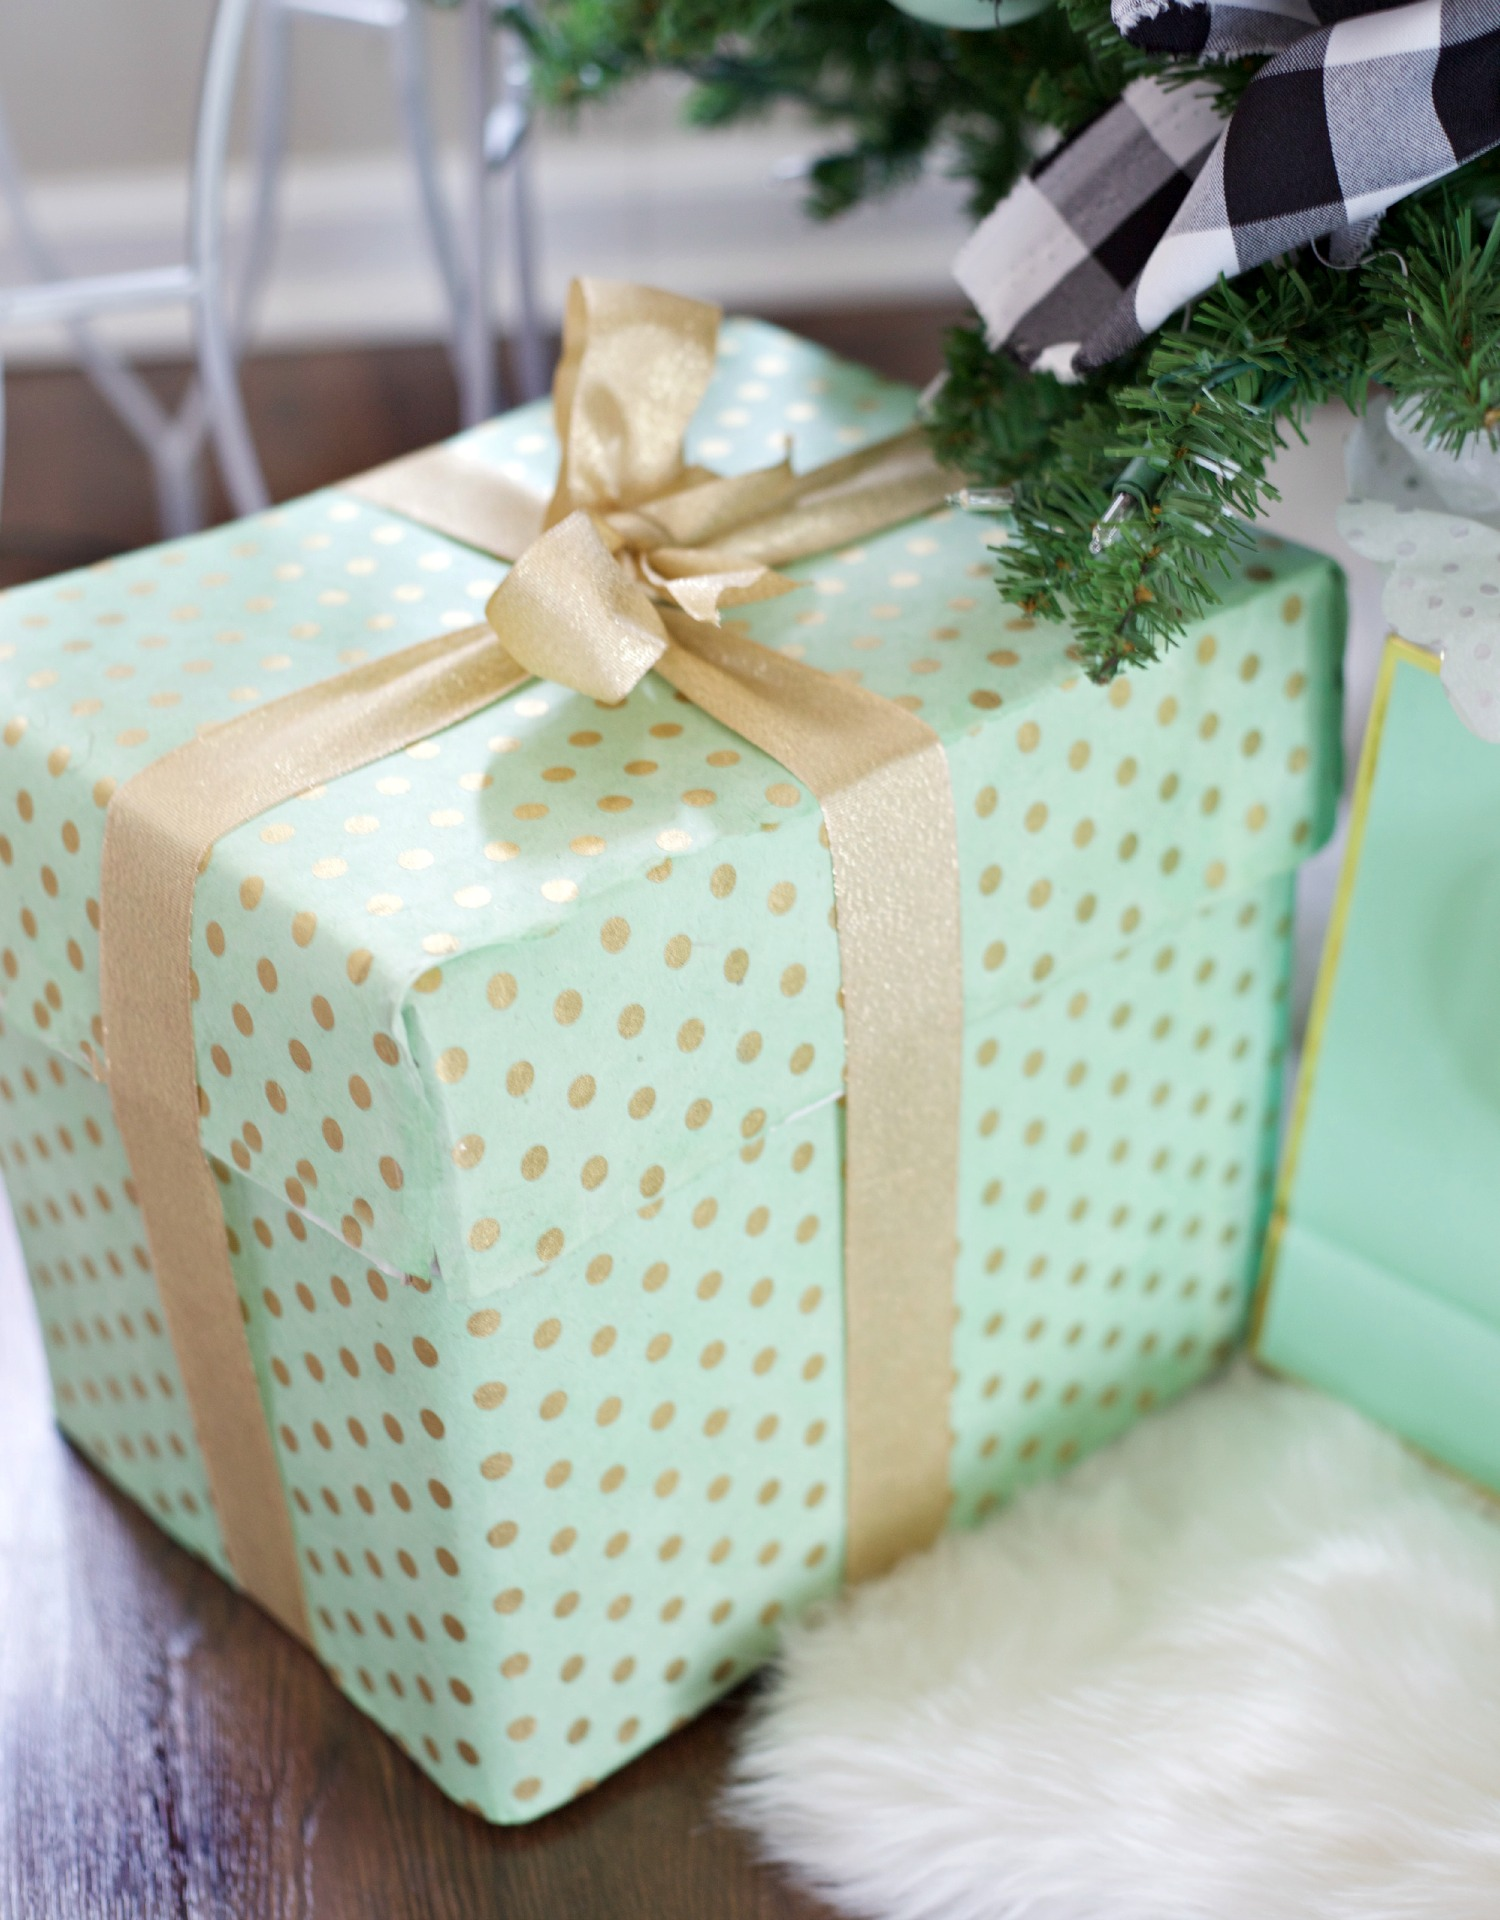 Easy Christmas Decorating Ideas | PartiesforPennies.com | Budget Friendly | Mint & Gold Wrapping Paper| Present